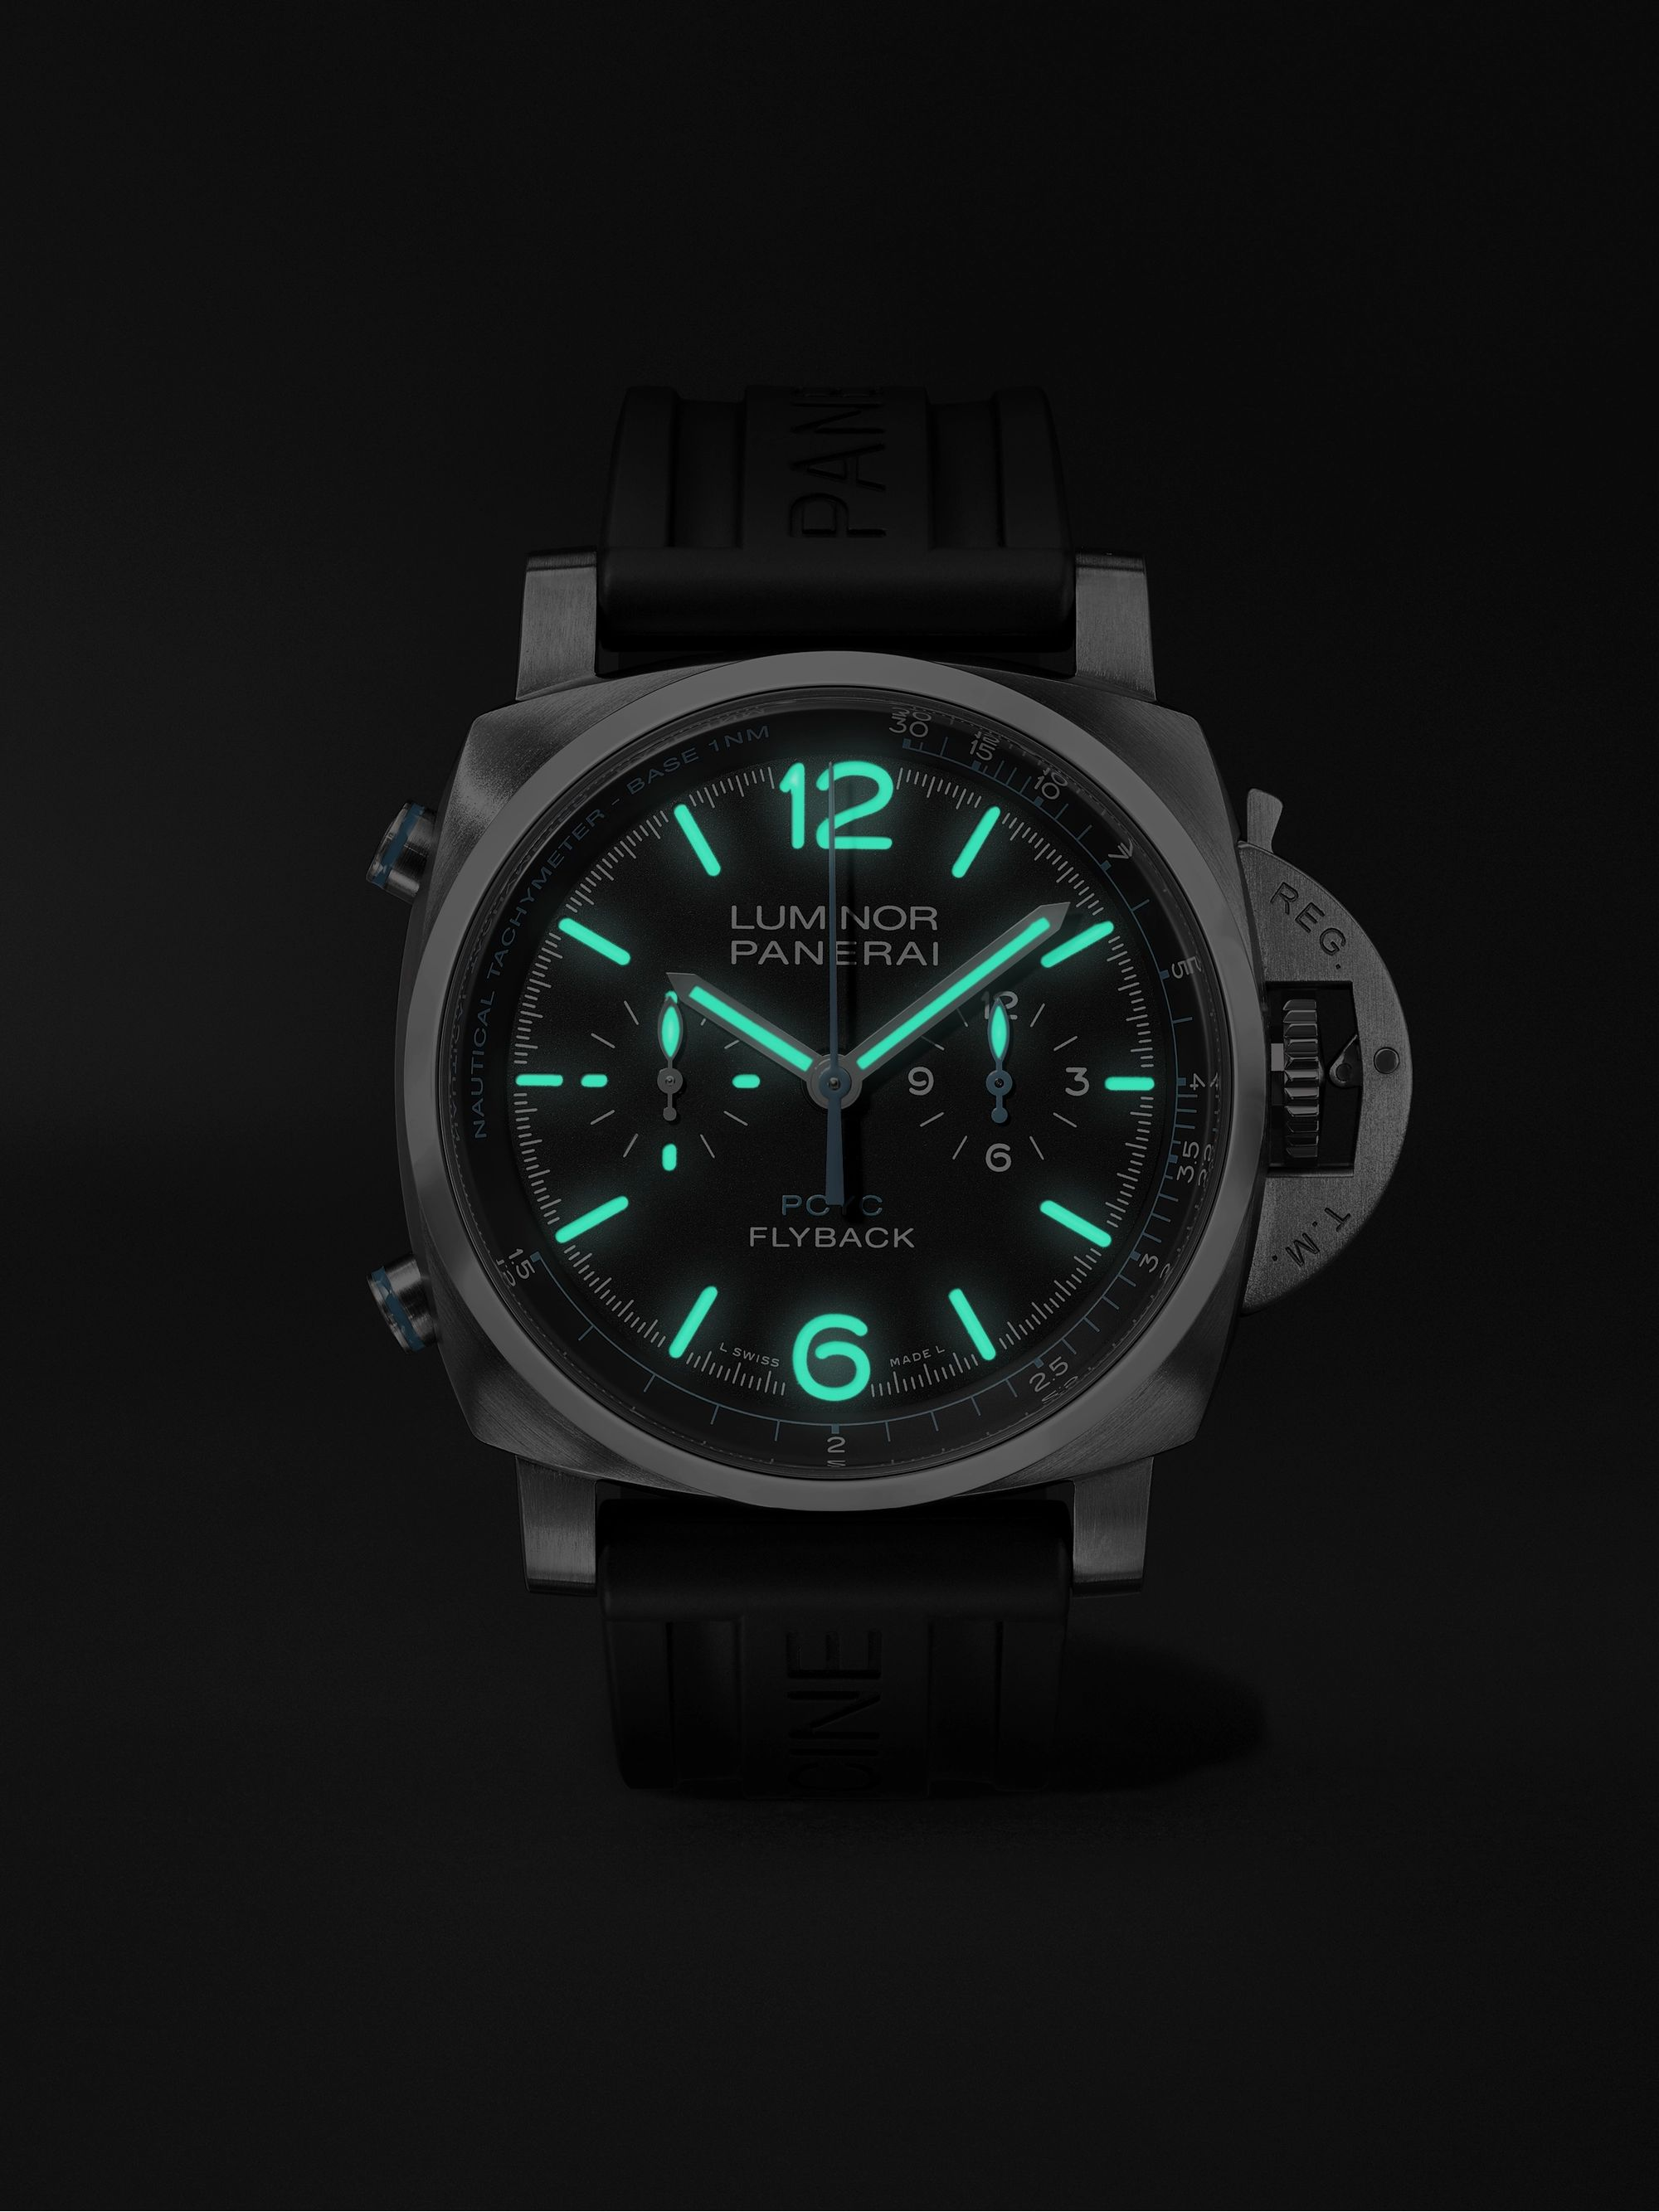 Panerai Luminor Yachts Challenge Automatic Flyback Chronograph 44mm Titanium and Rubber Watch, Ref. No. PAM00764